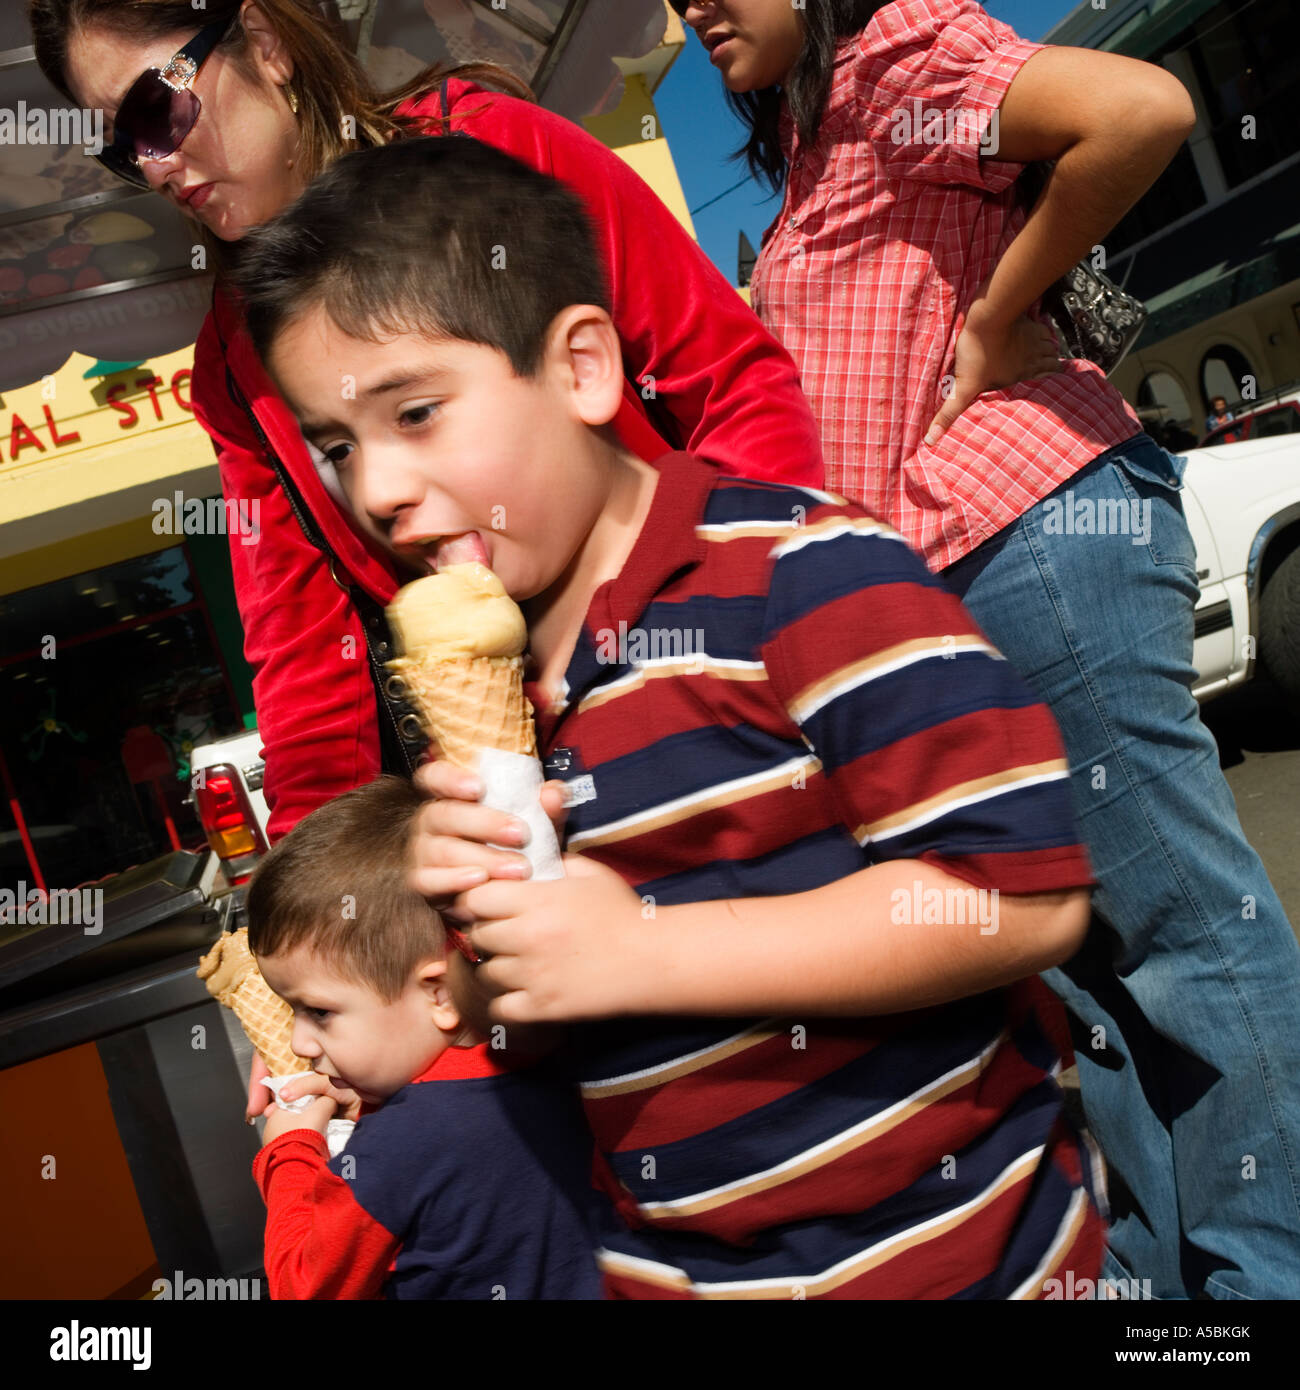 Ice Cream boy - Stock Image